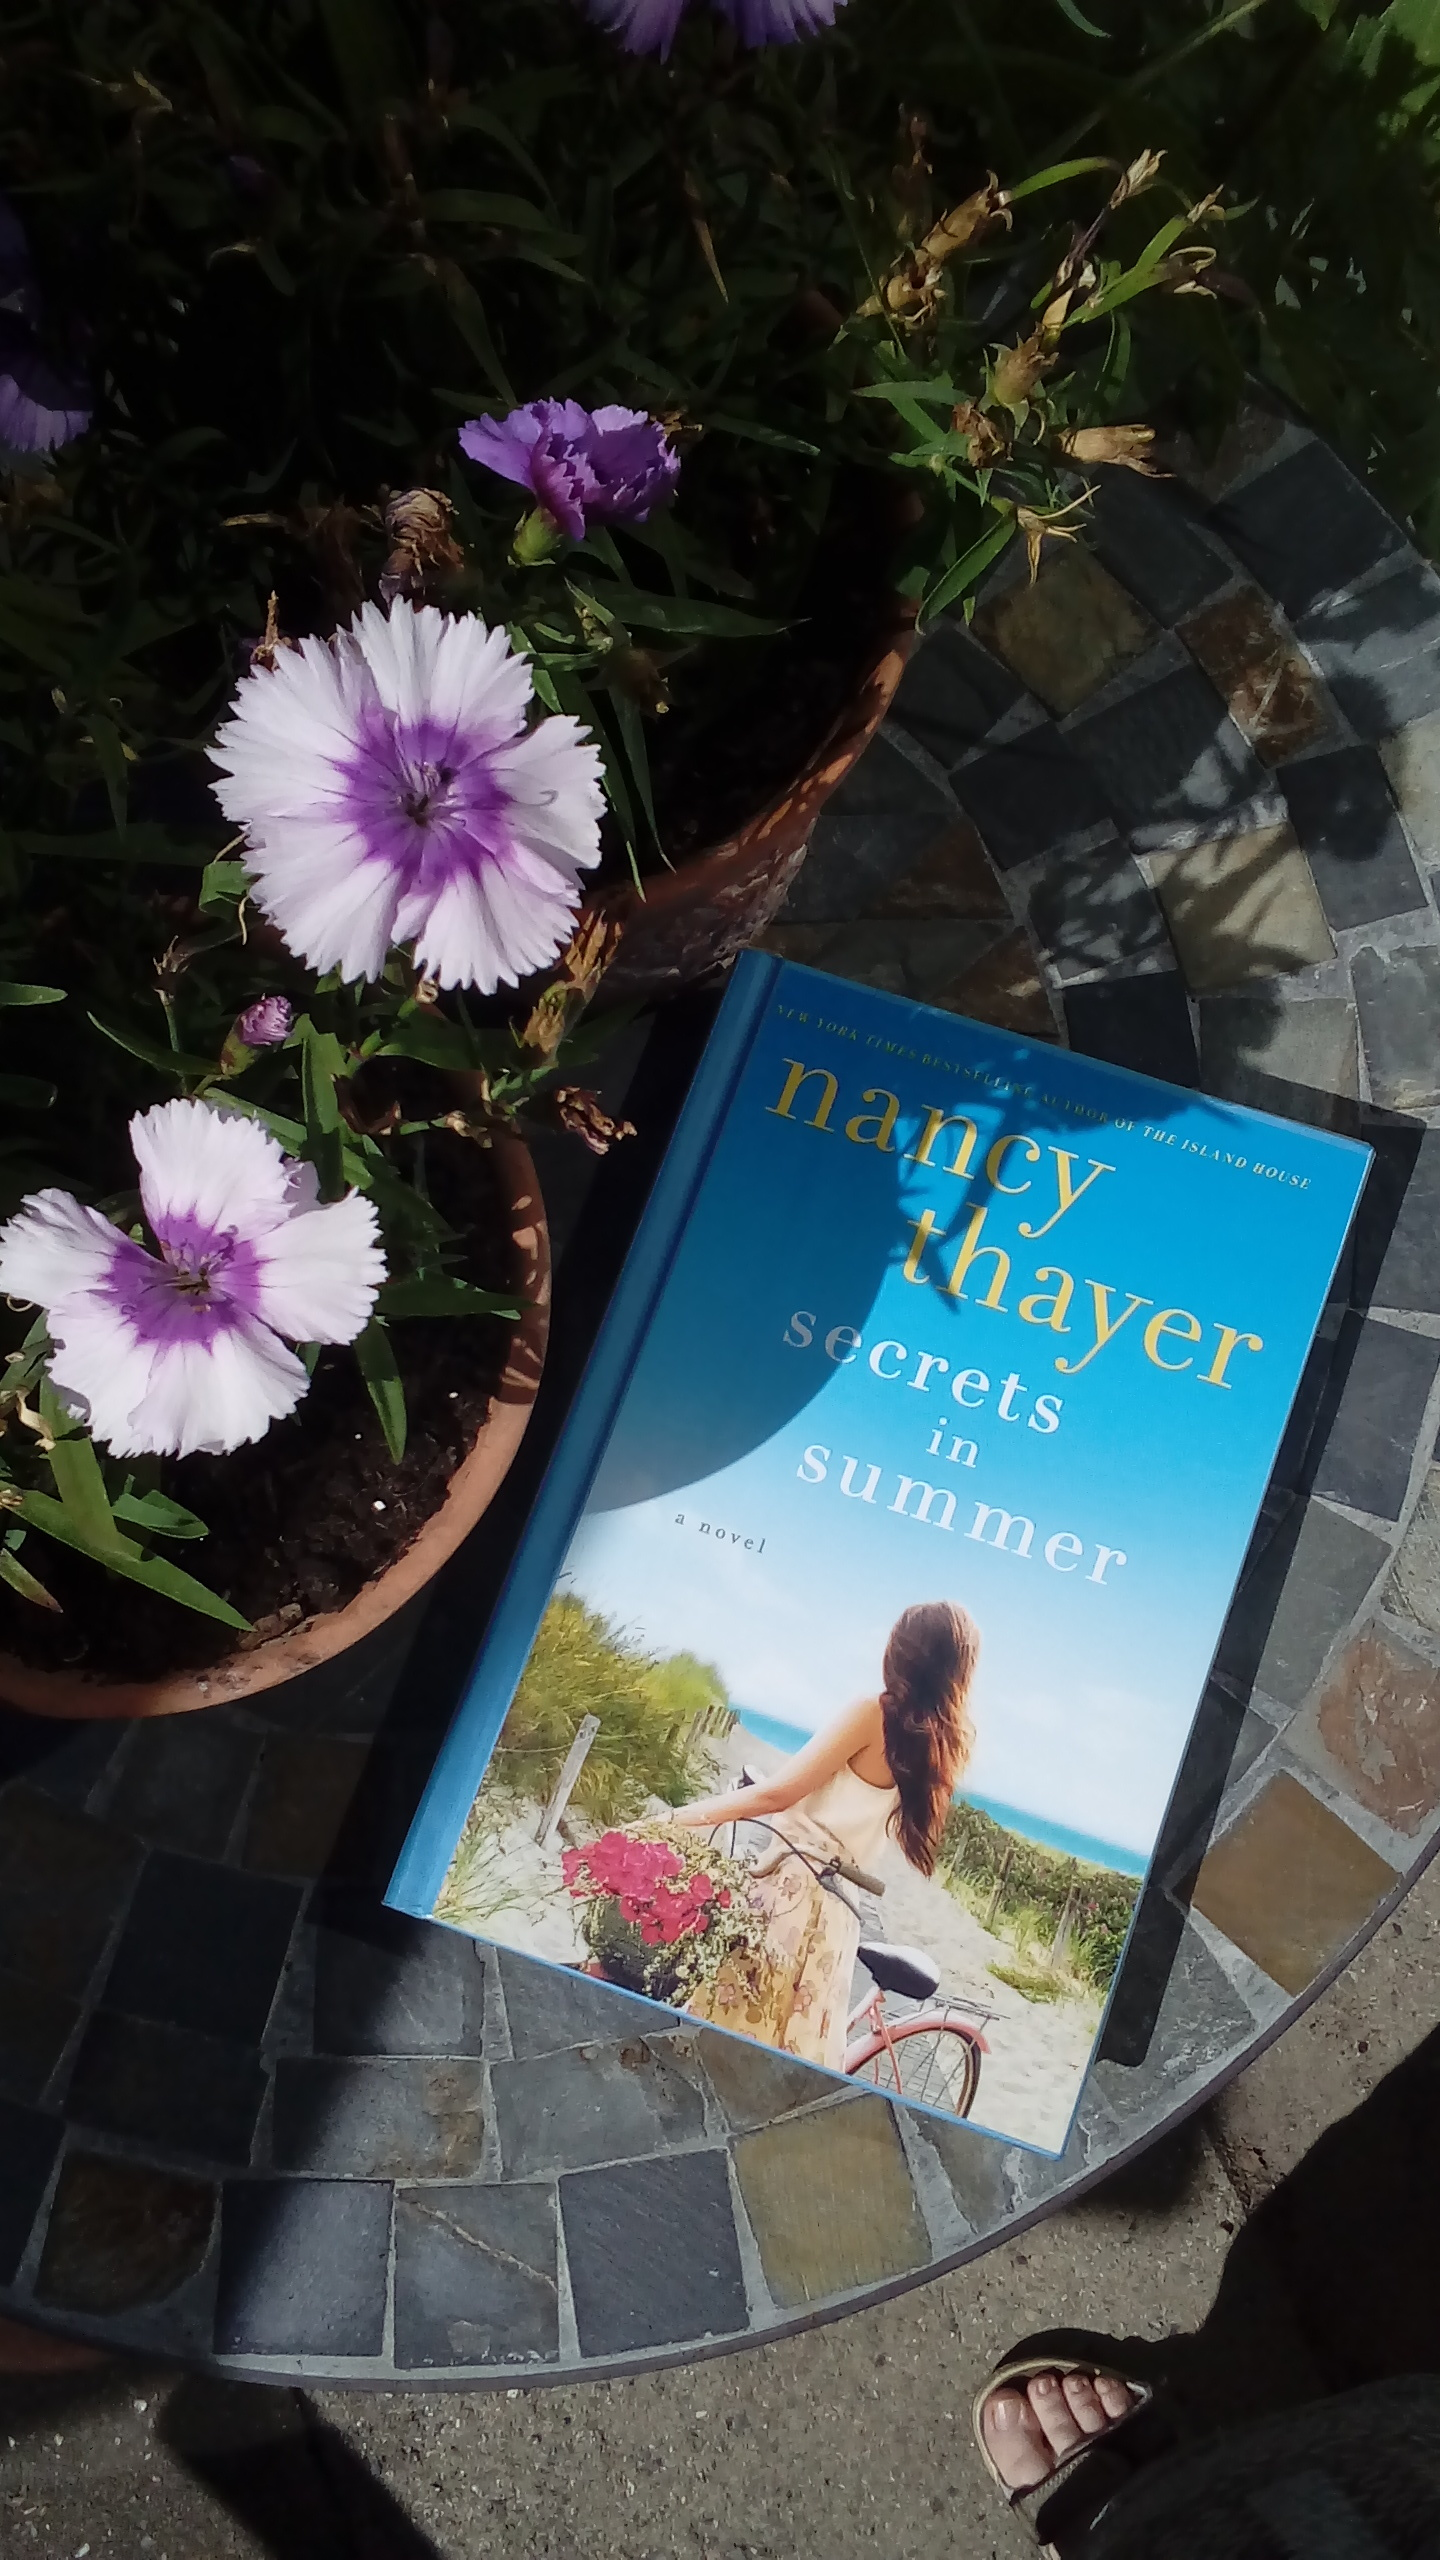 Secrets in summer - transports you to Nantucket